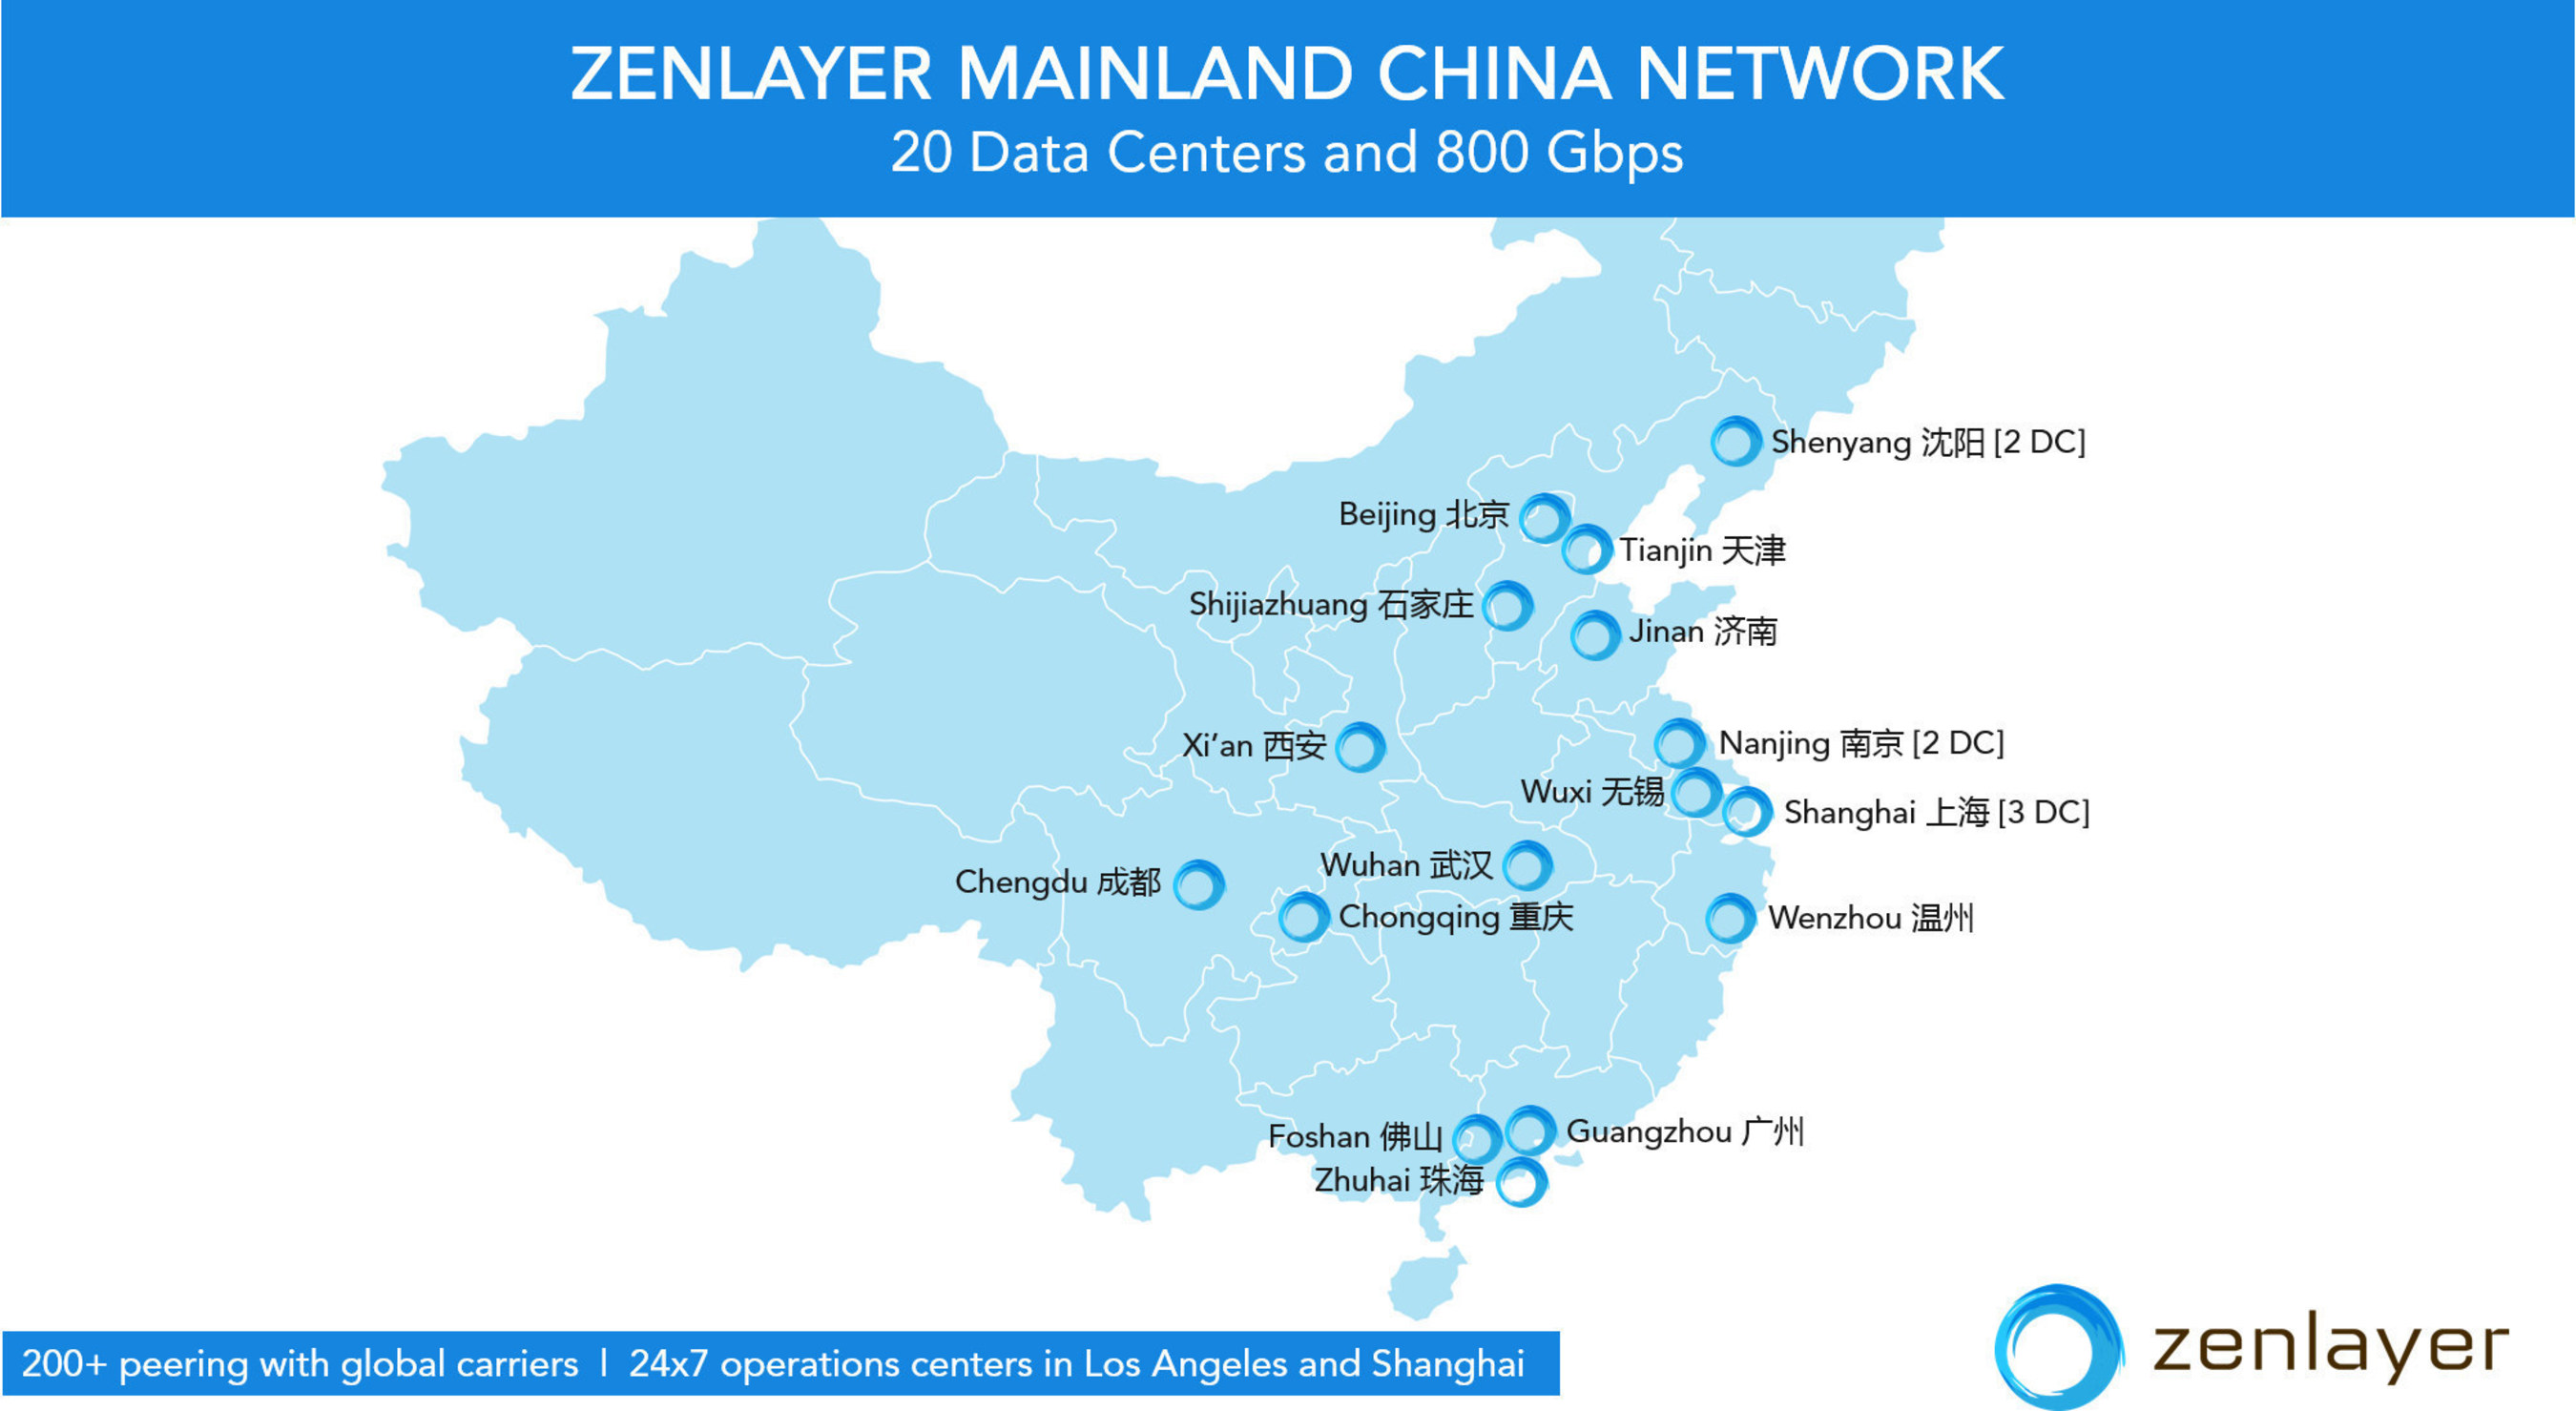 Zenlayer's China data centers